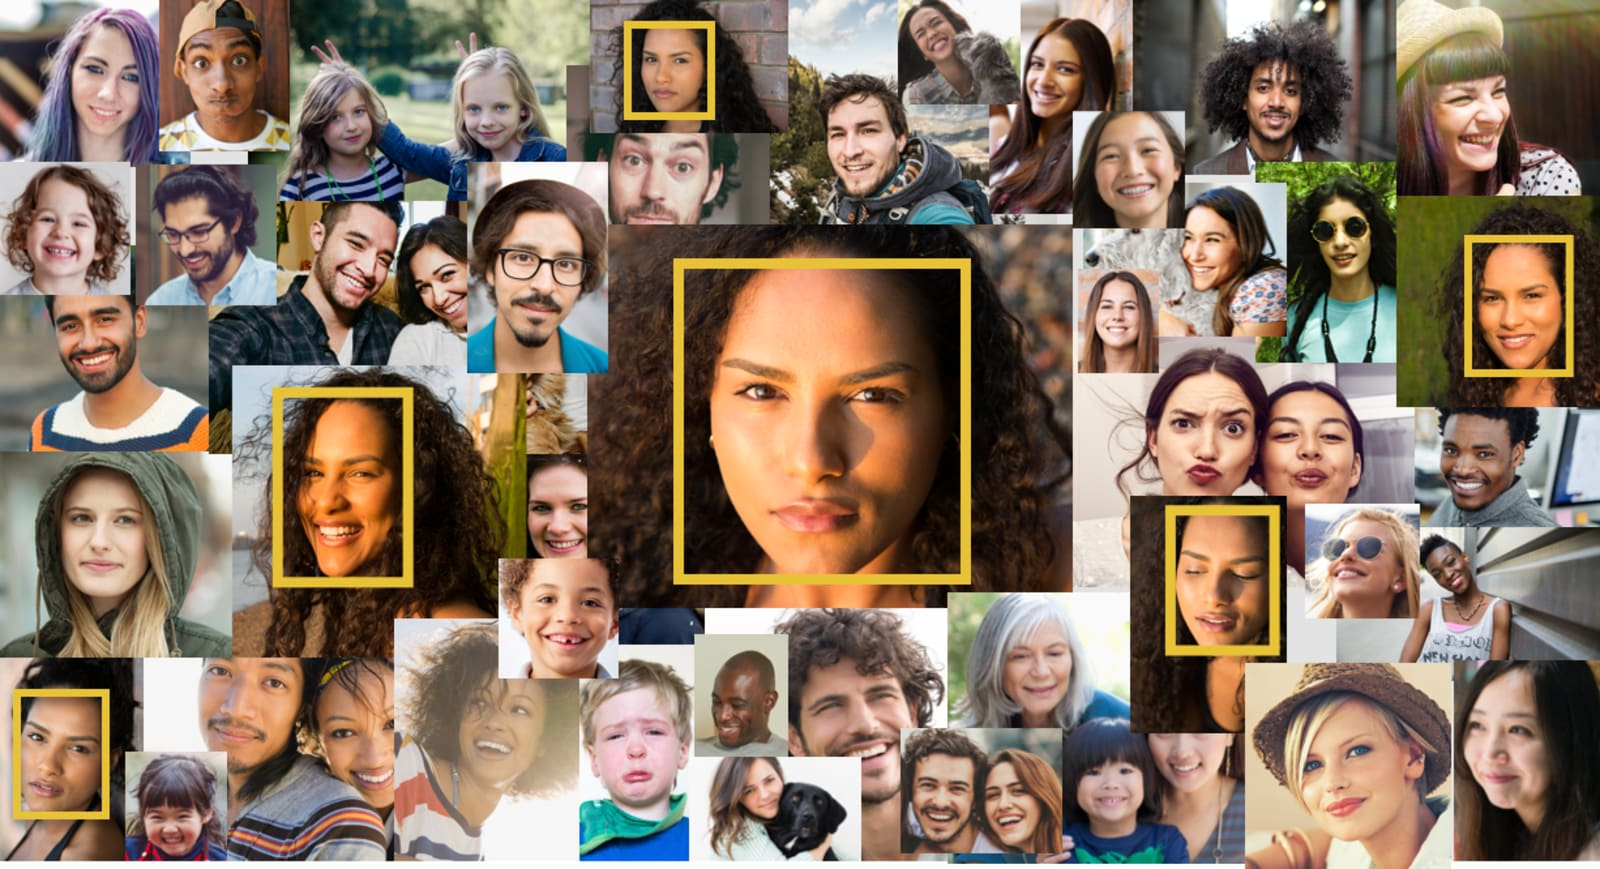 Amazon's facial recognition identified lawmakers as lawbreakers